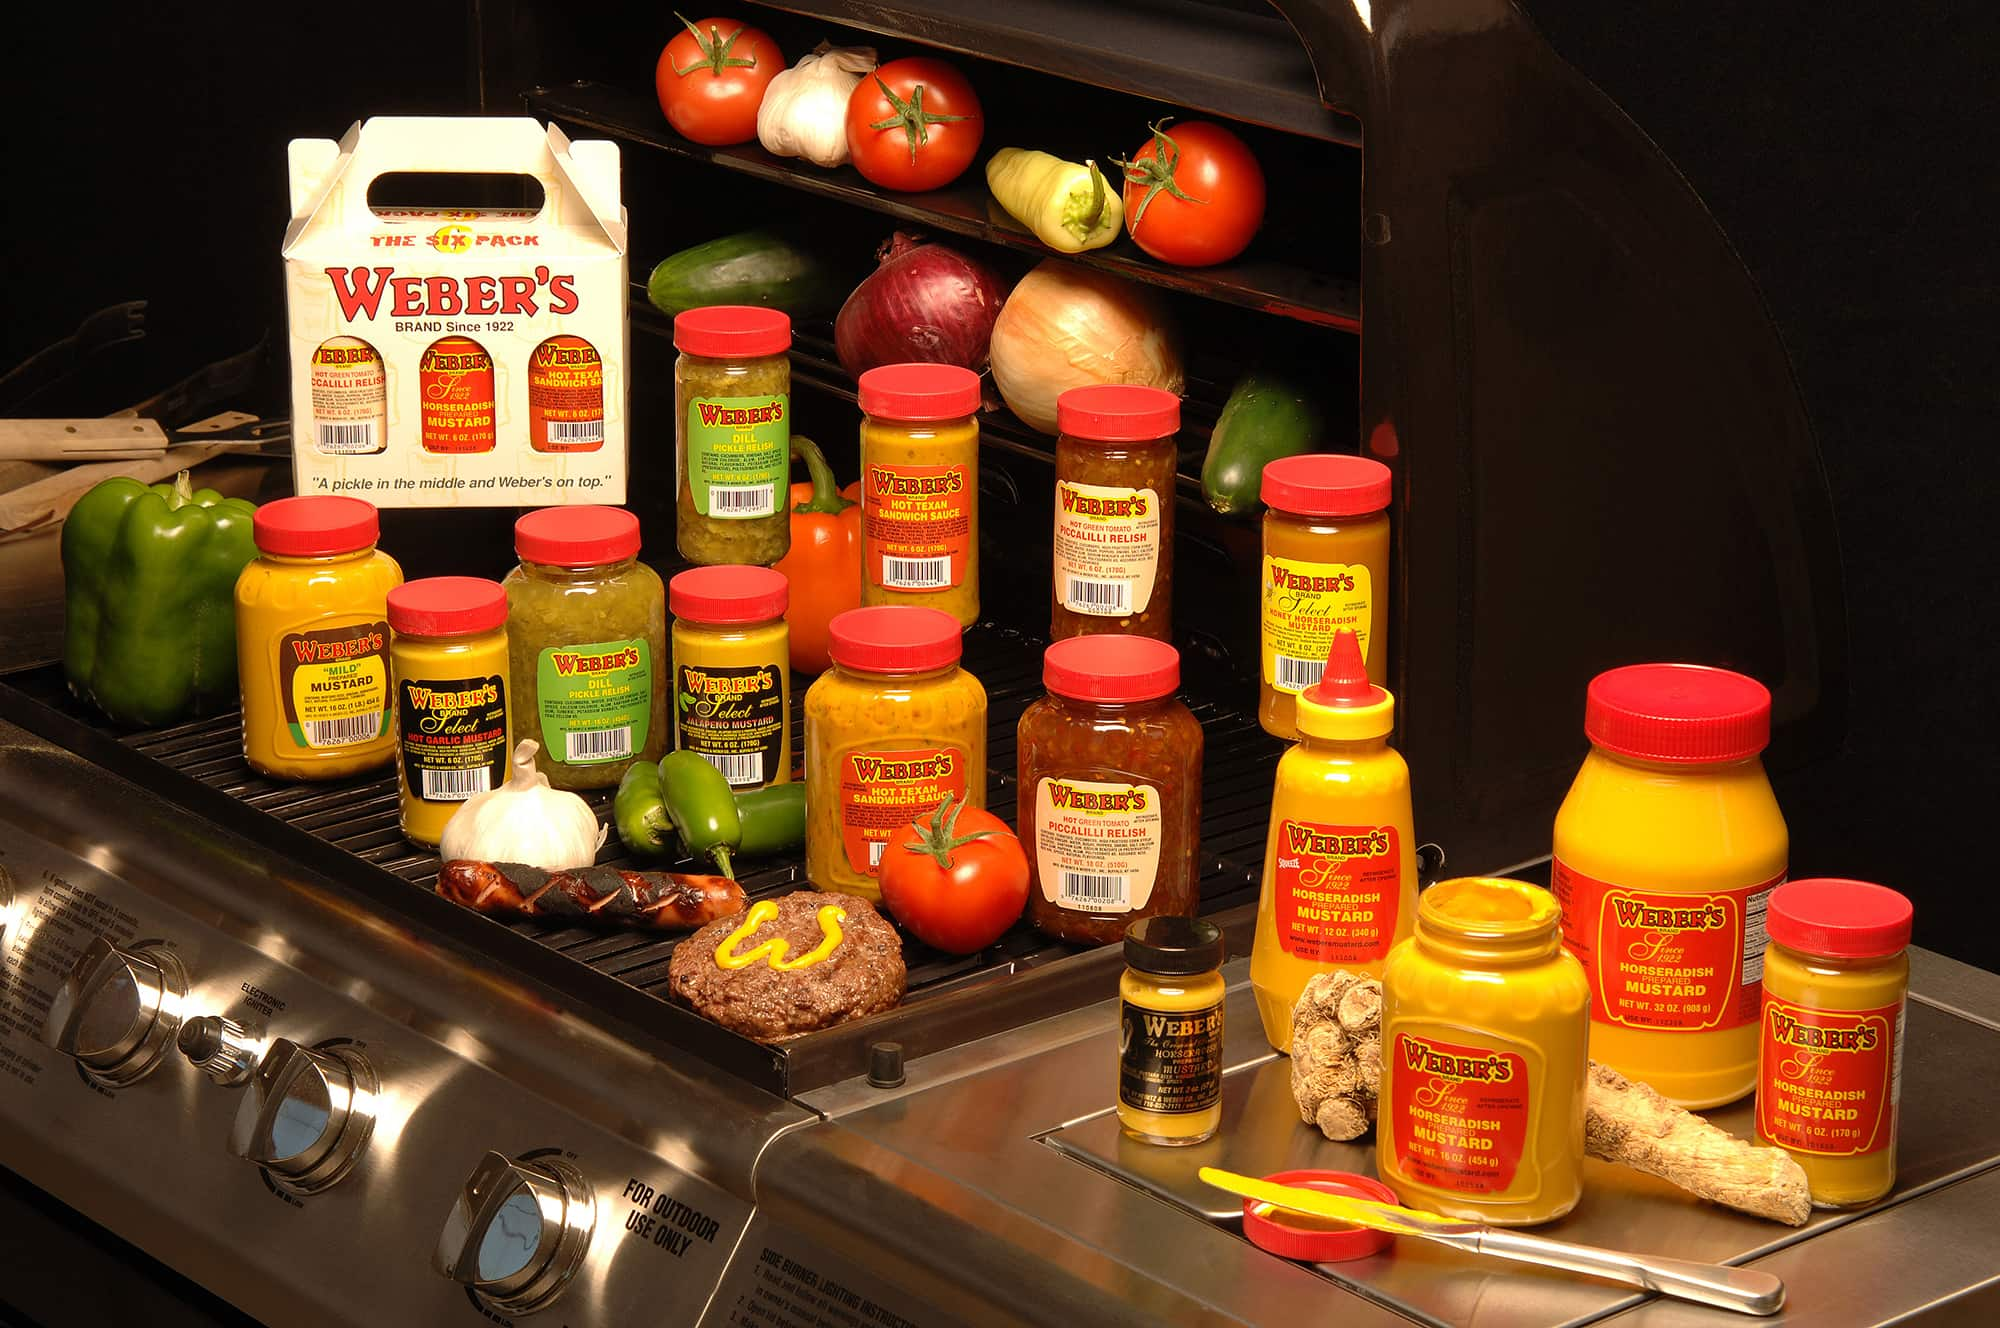 Are You Looking For Weber's????? - Webers Mustard